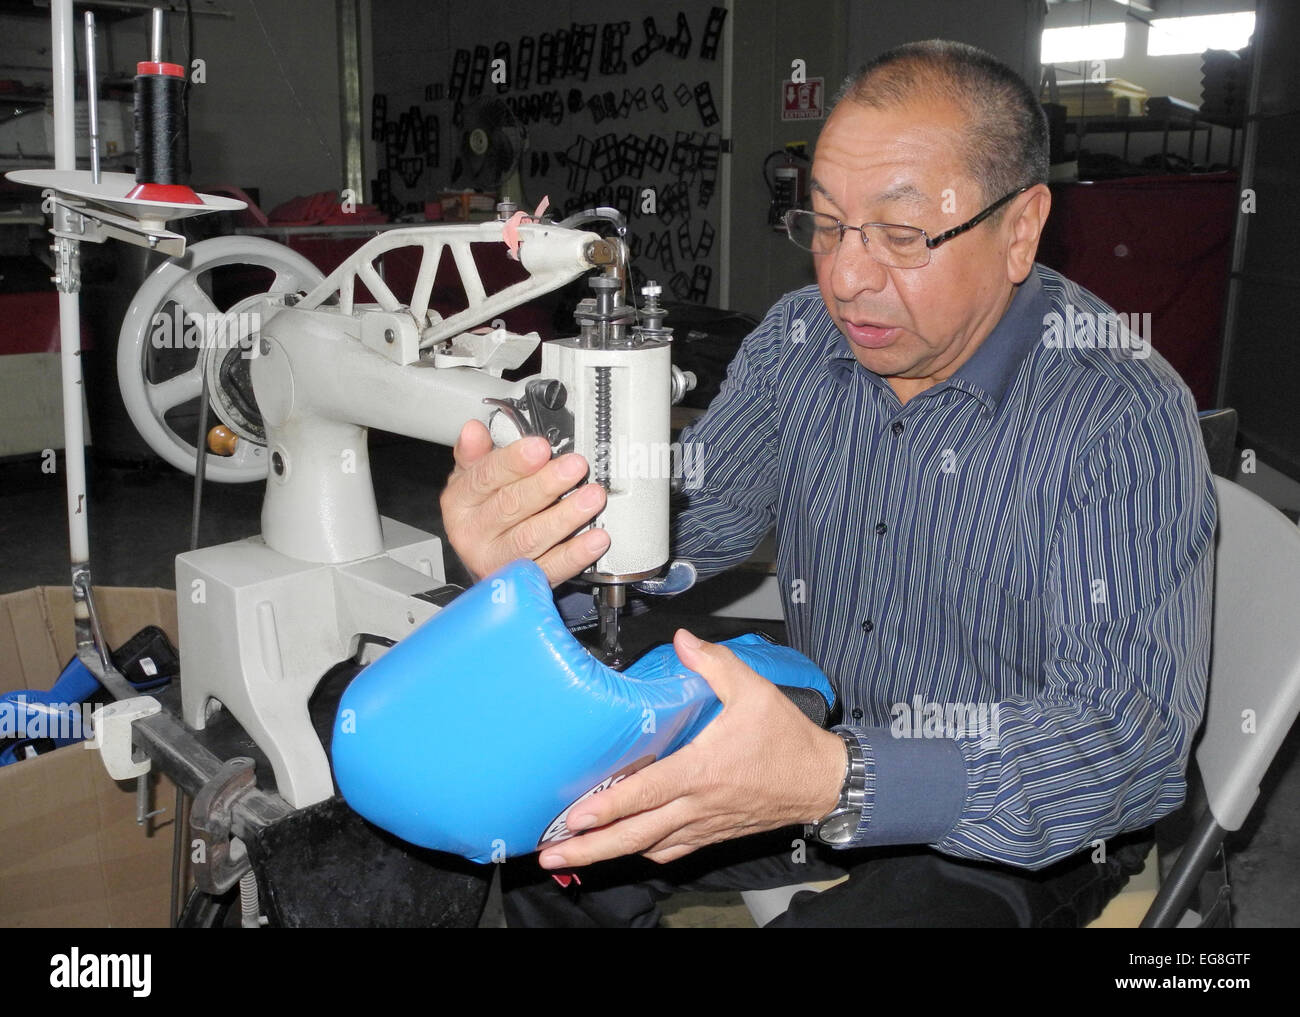 The head of manufacturer of boxing gloves Cleto Reyes, Alberto Reyes, works on the production of a professional - Stock Image